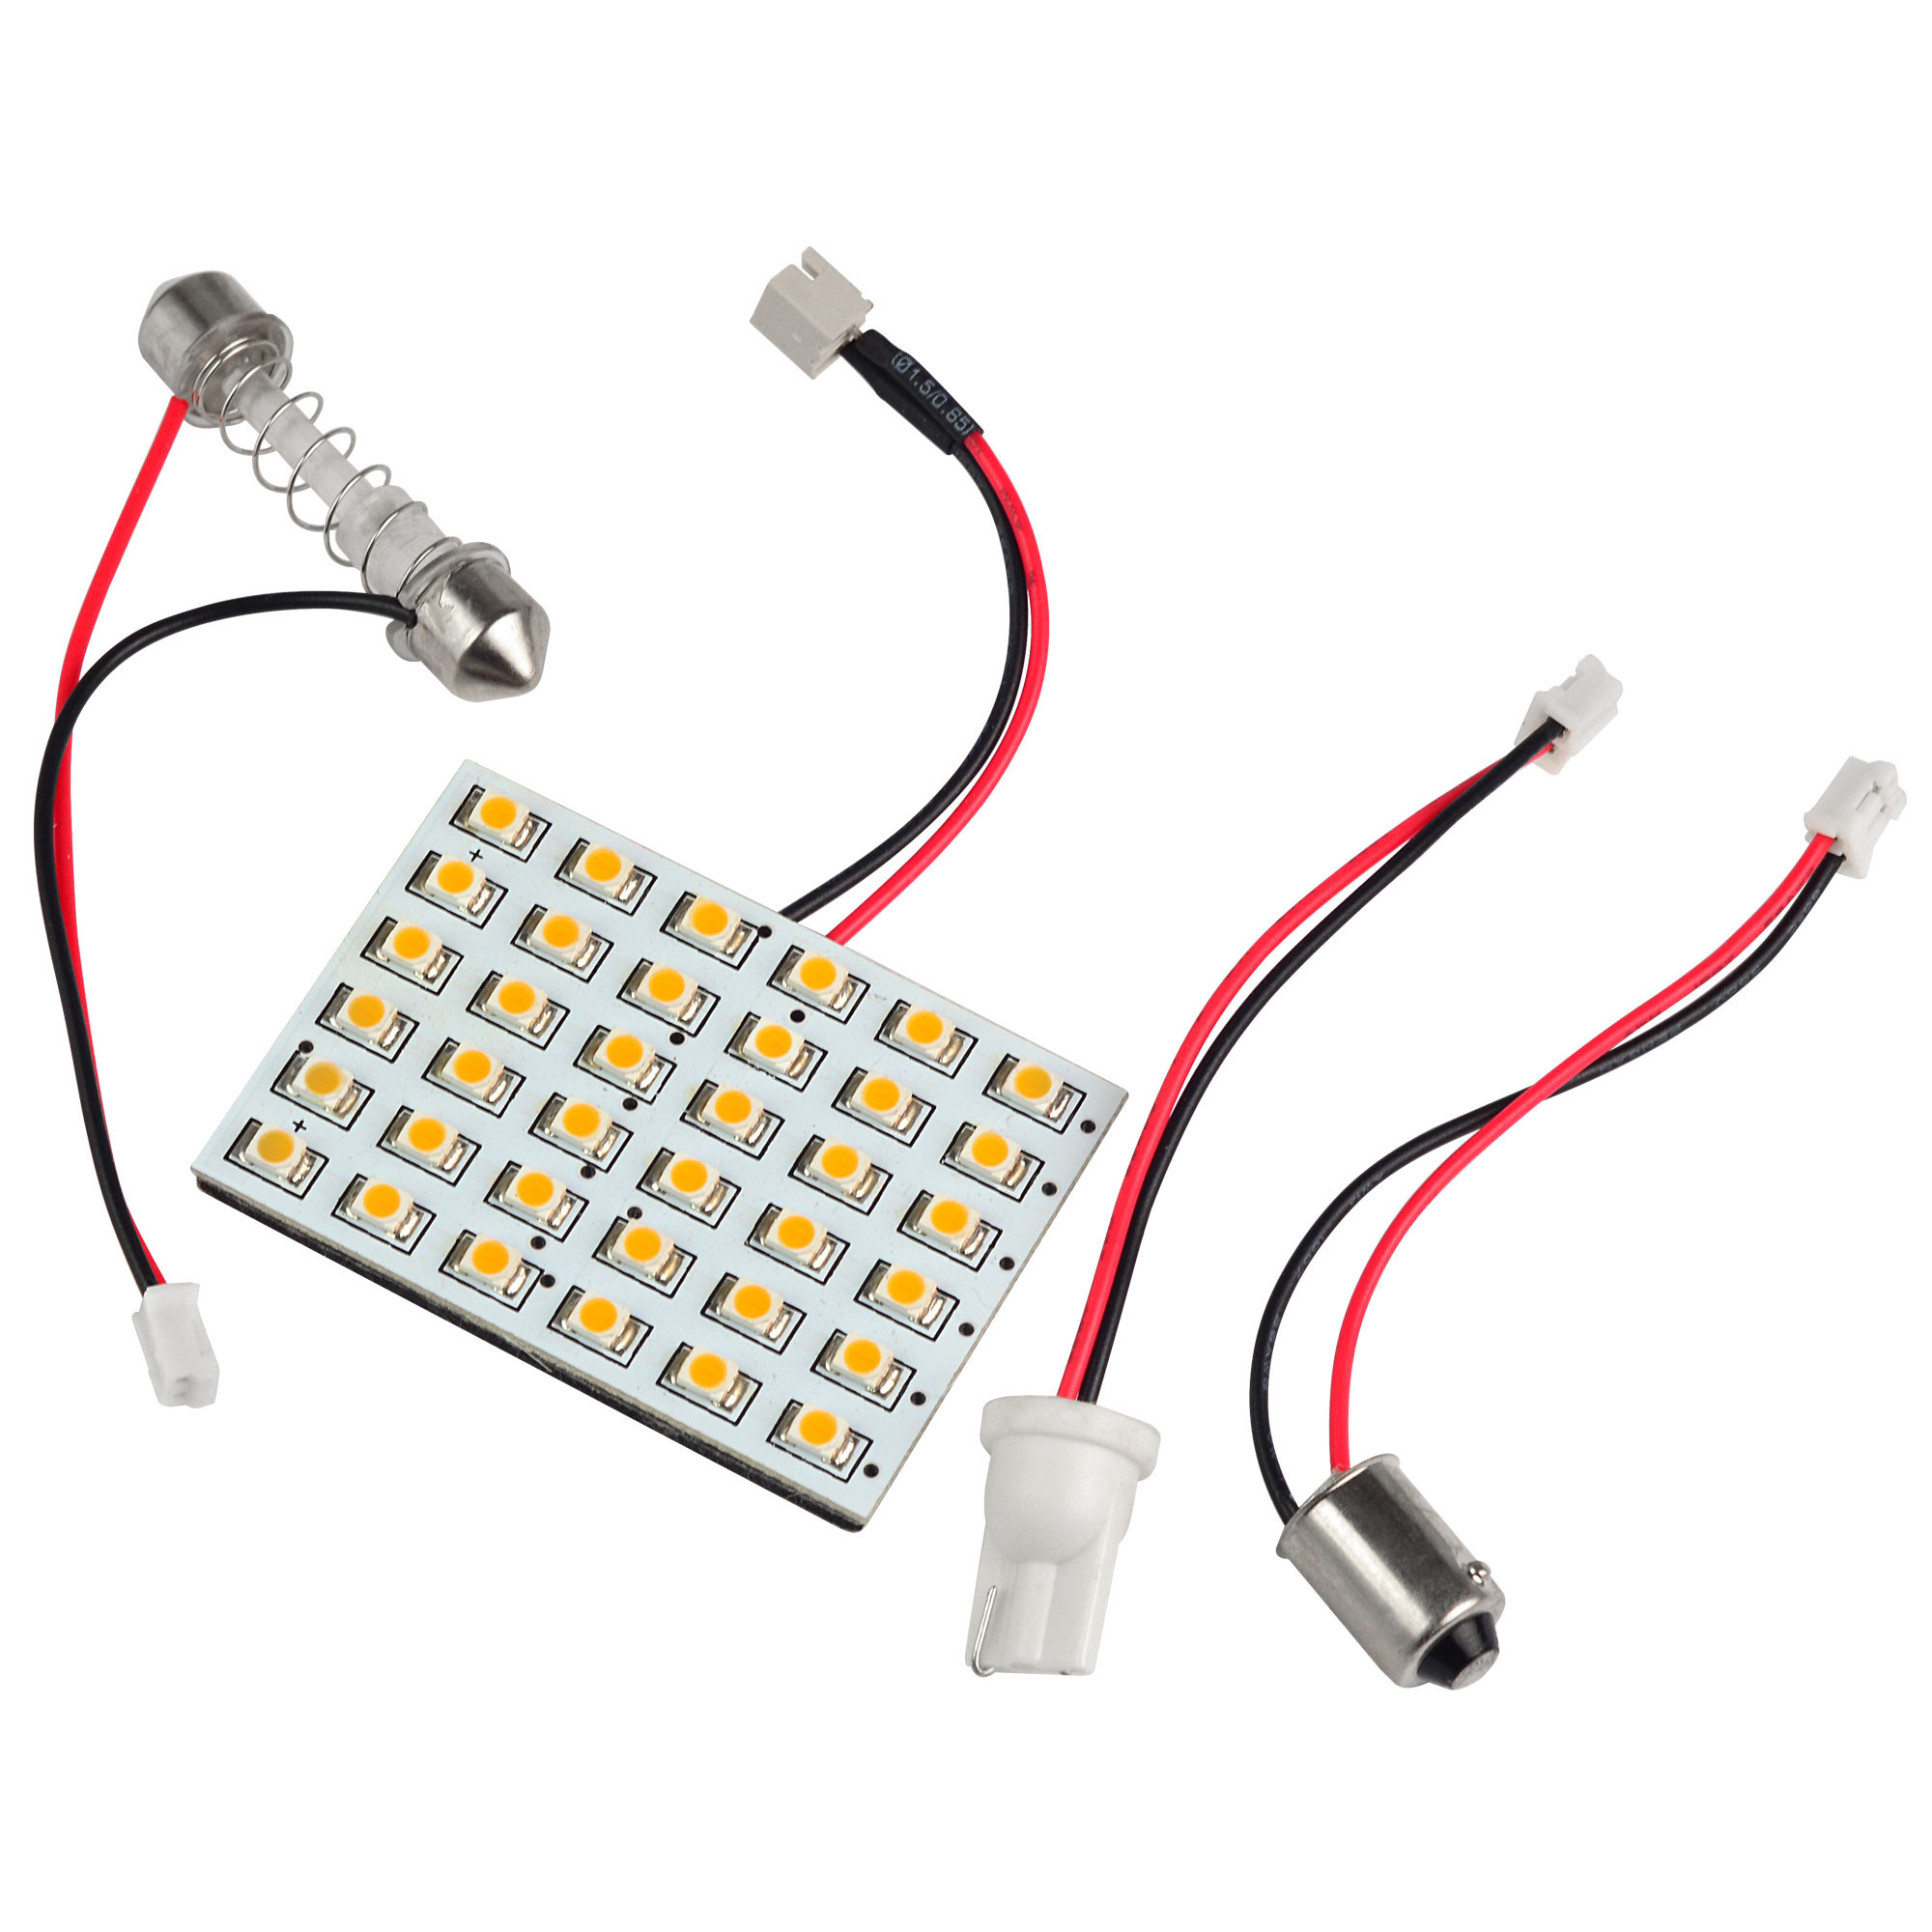 MENGS® T10 BA9S SV8.5 LED Car Interior Light Panel with 3 Adapters 36x 3528 SMD LED Bulb Lamp DC 12V In Warm White